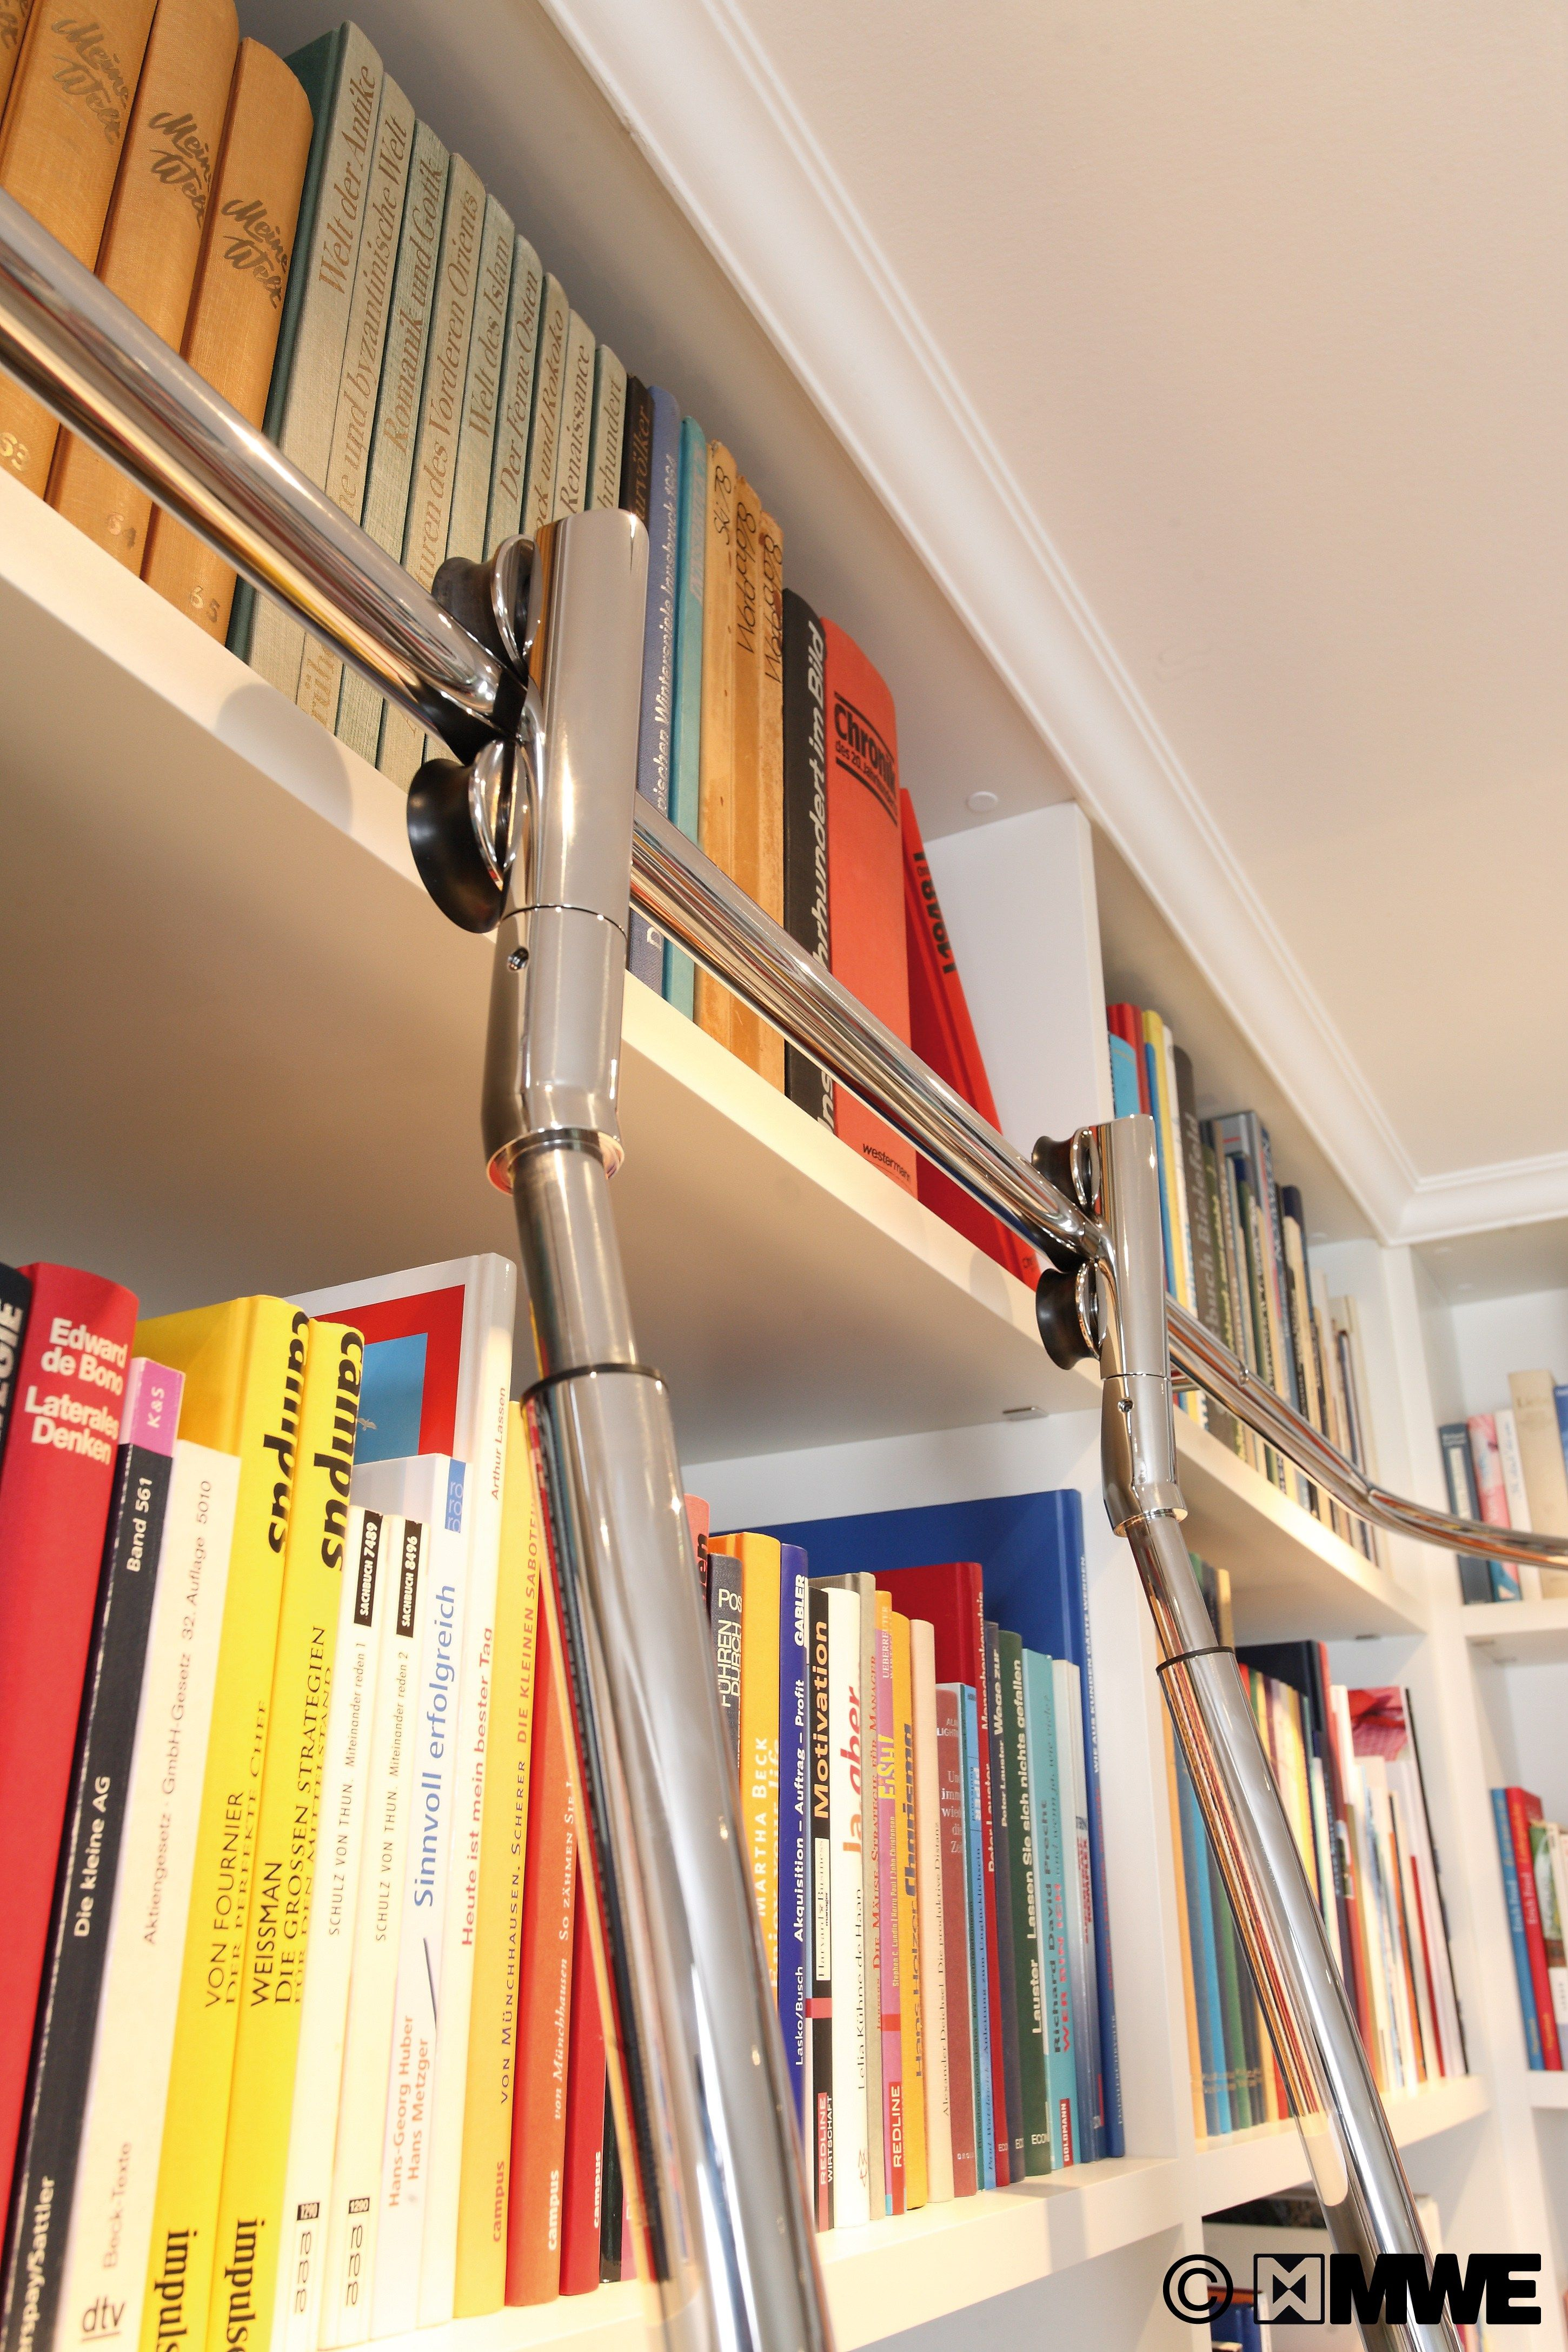 Special constructed vario telescopic library ladder with autostop